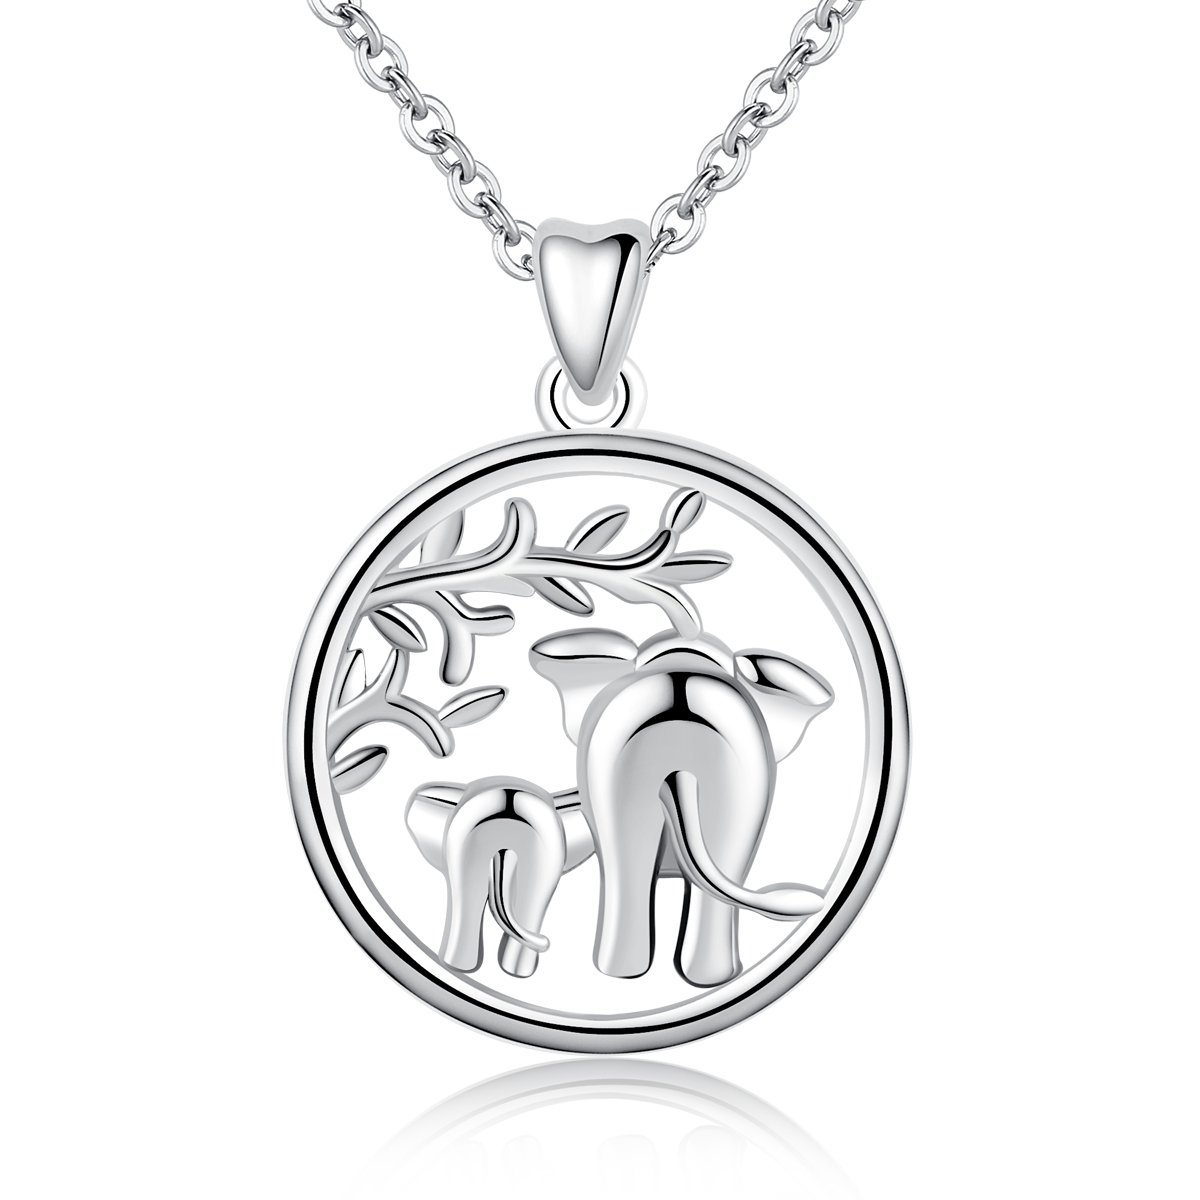 26c4ca9d7 Amazon.com: AEONSLOVE 925 Sterling Silver Lucky Elephant